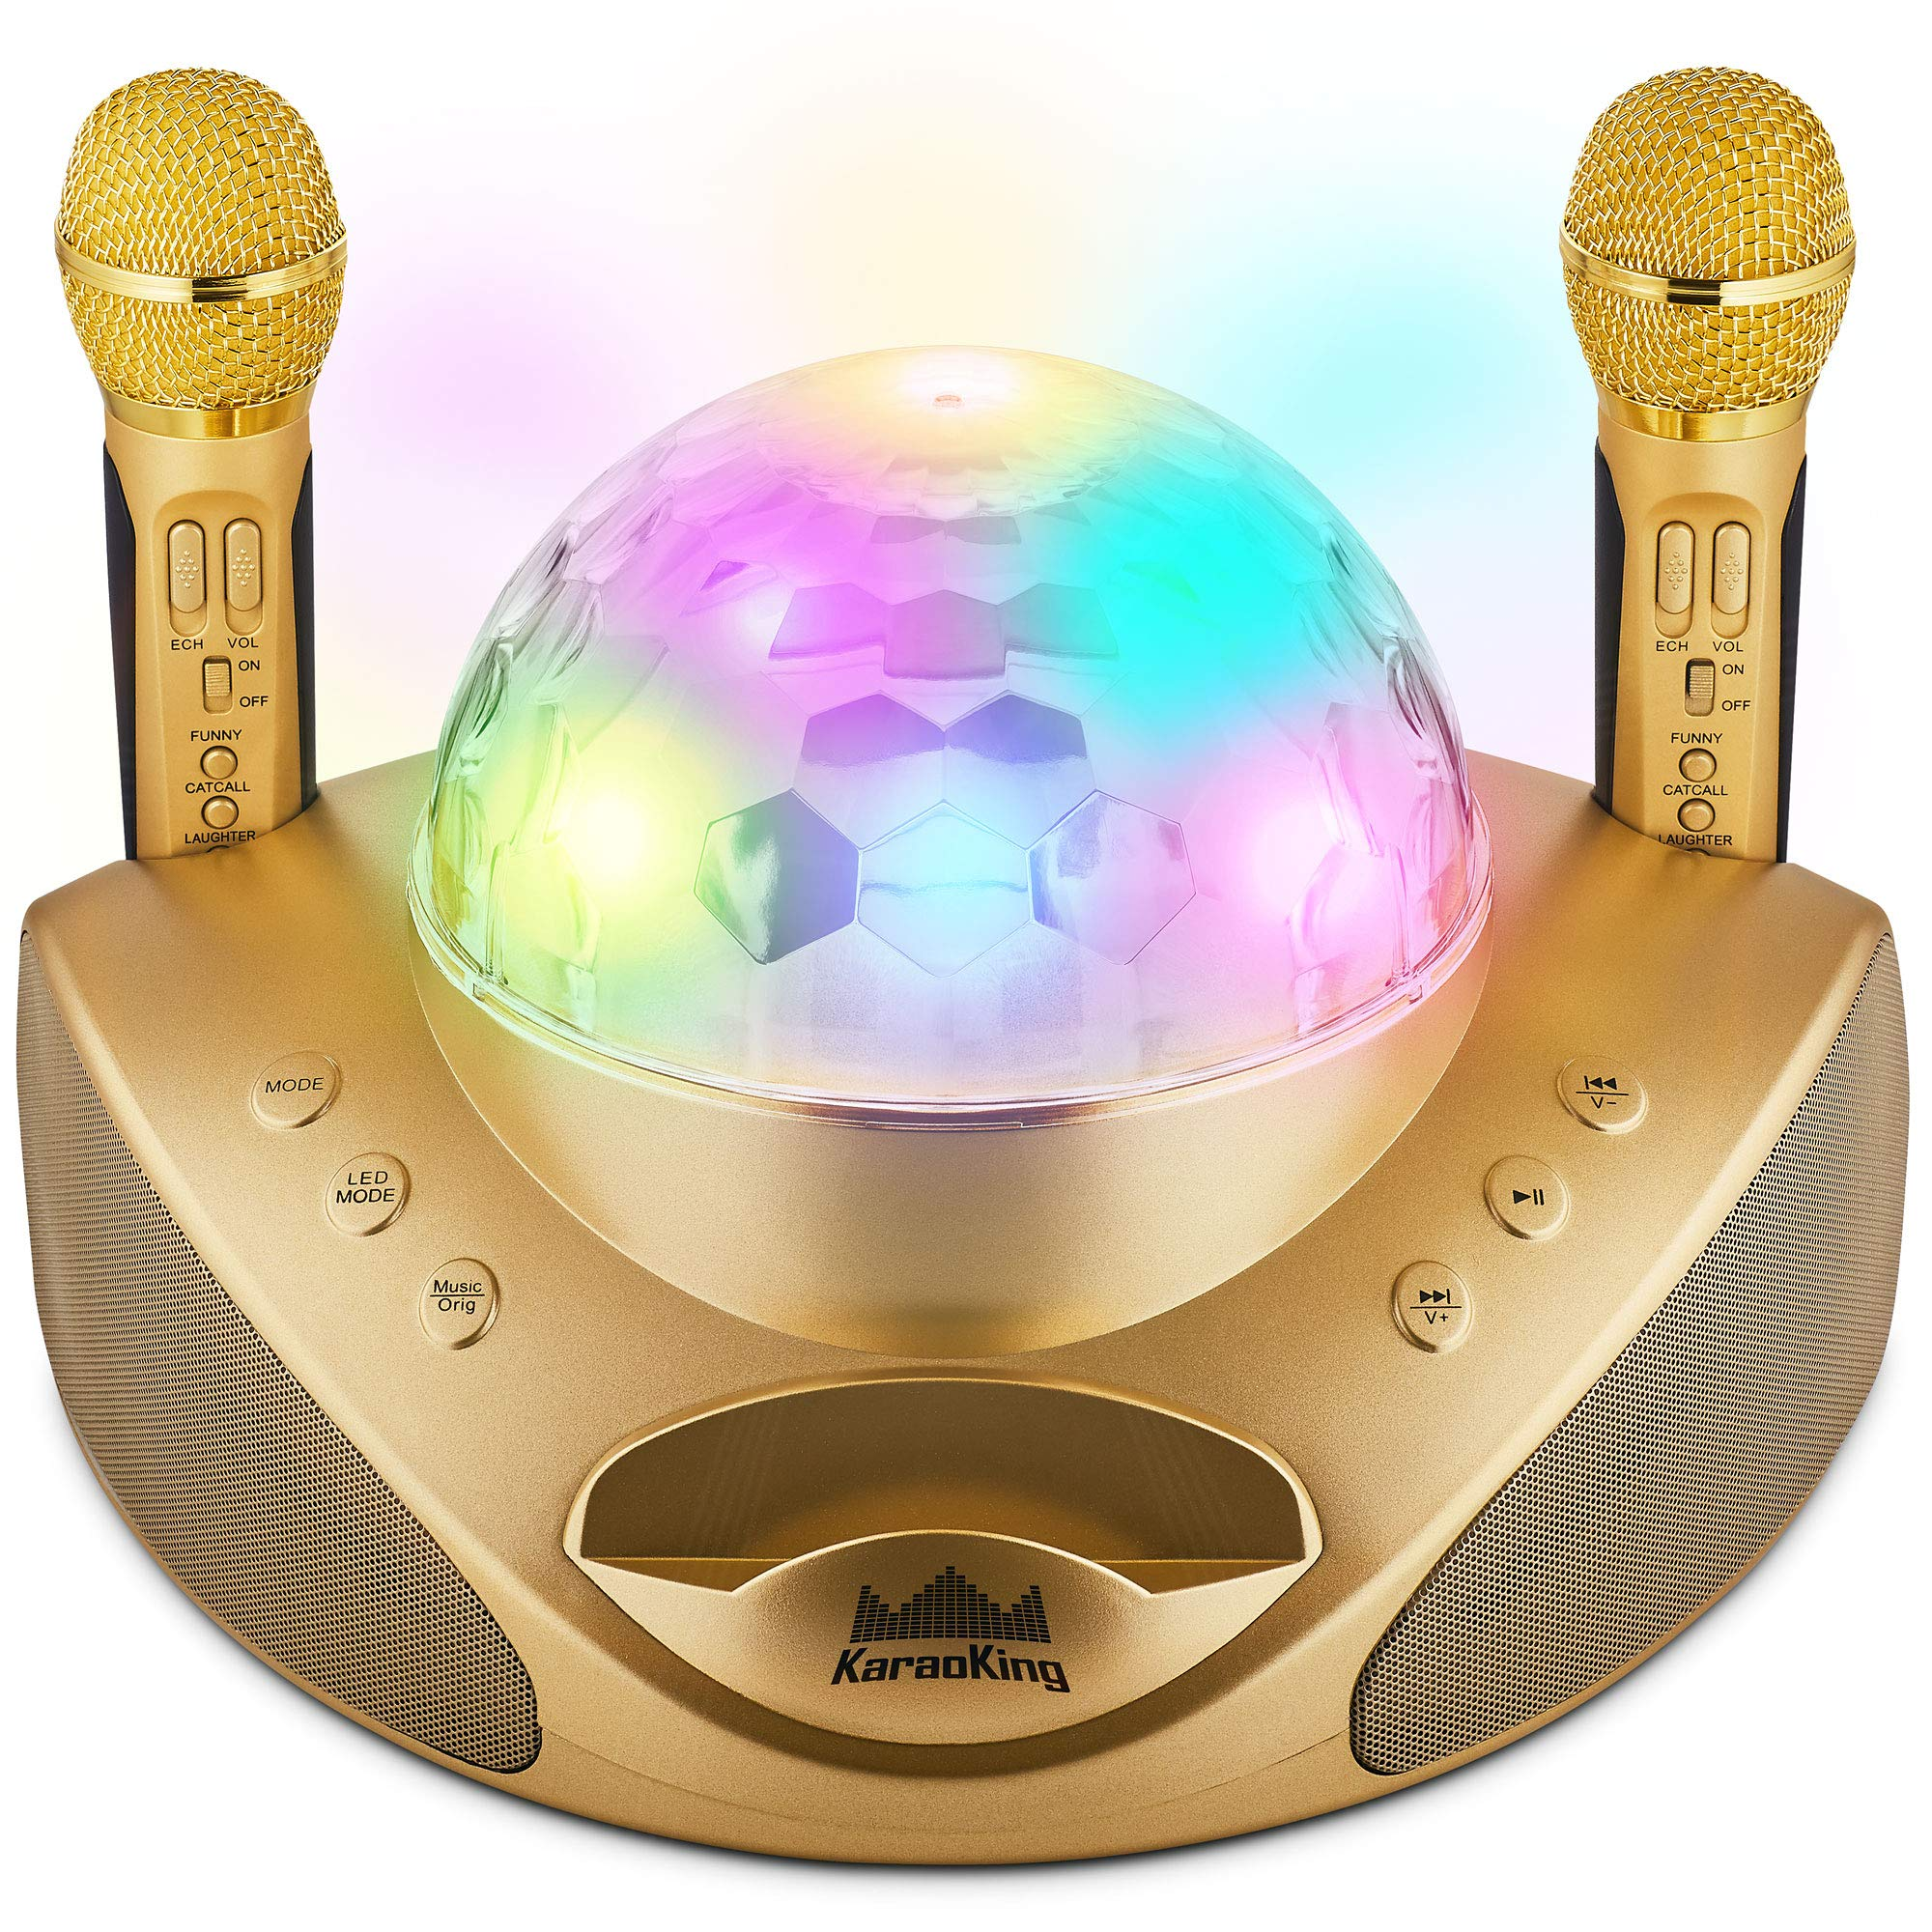 KaraoKing New 2020 Karaoke Machine – for Adults and Kids –2 Wireless Karaoke Microphone, SD Card, USB, Bluetooth Compatible, Lights Function– Home, Bachelor Party, Picnic, Outdoor/Indoor [G308 Gold]